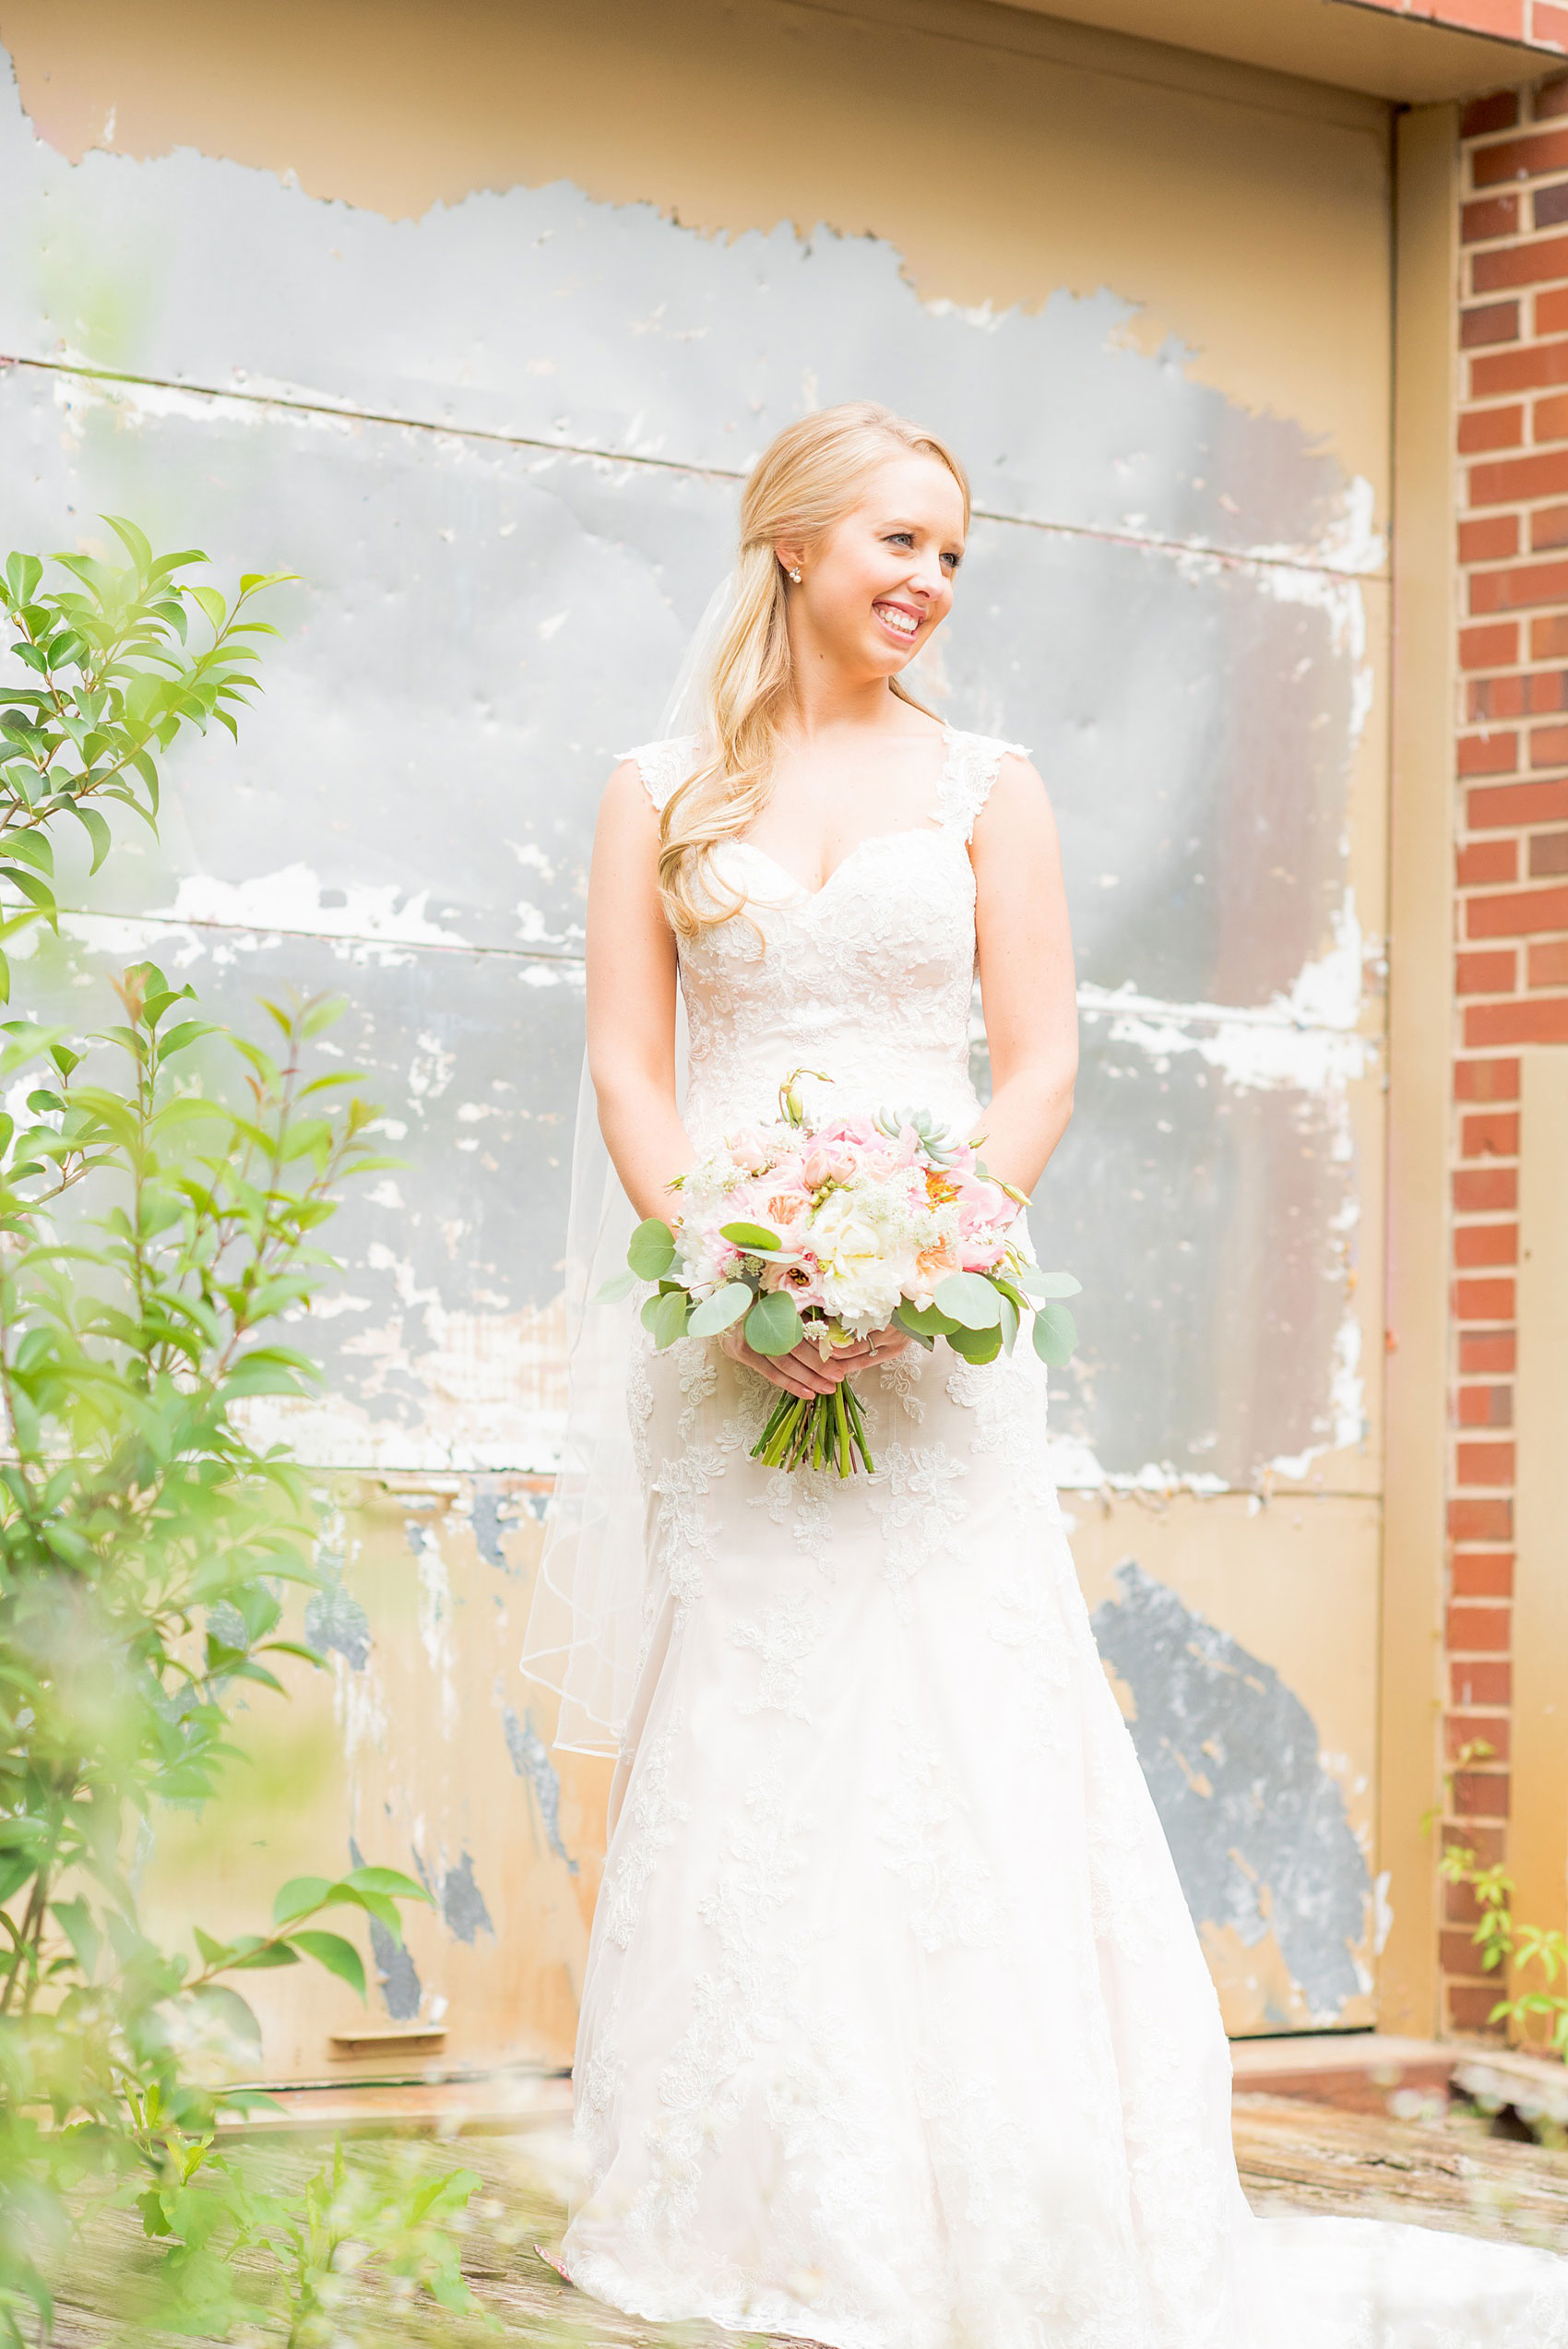 Mikkel Paige Photography photos from a wedding in Durham, North Carolina. Picture of the bride in an urban, rustic setting.